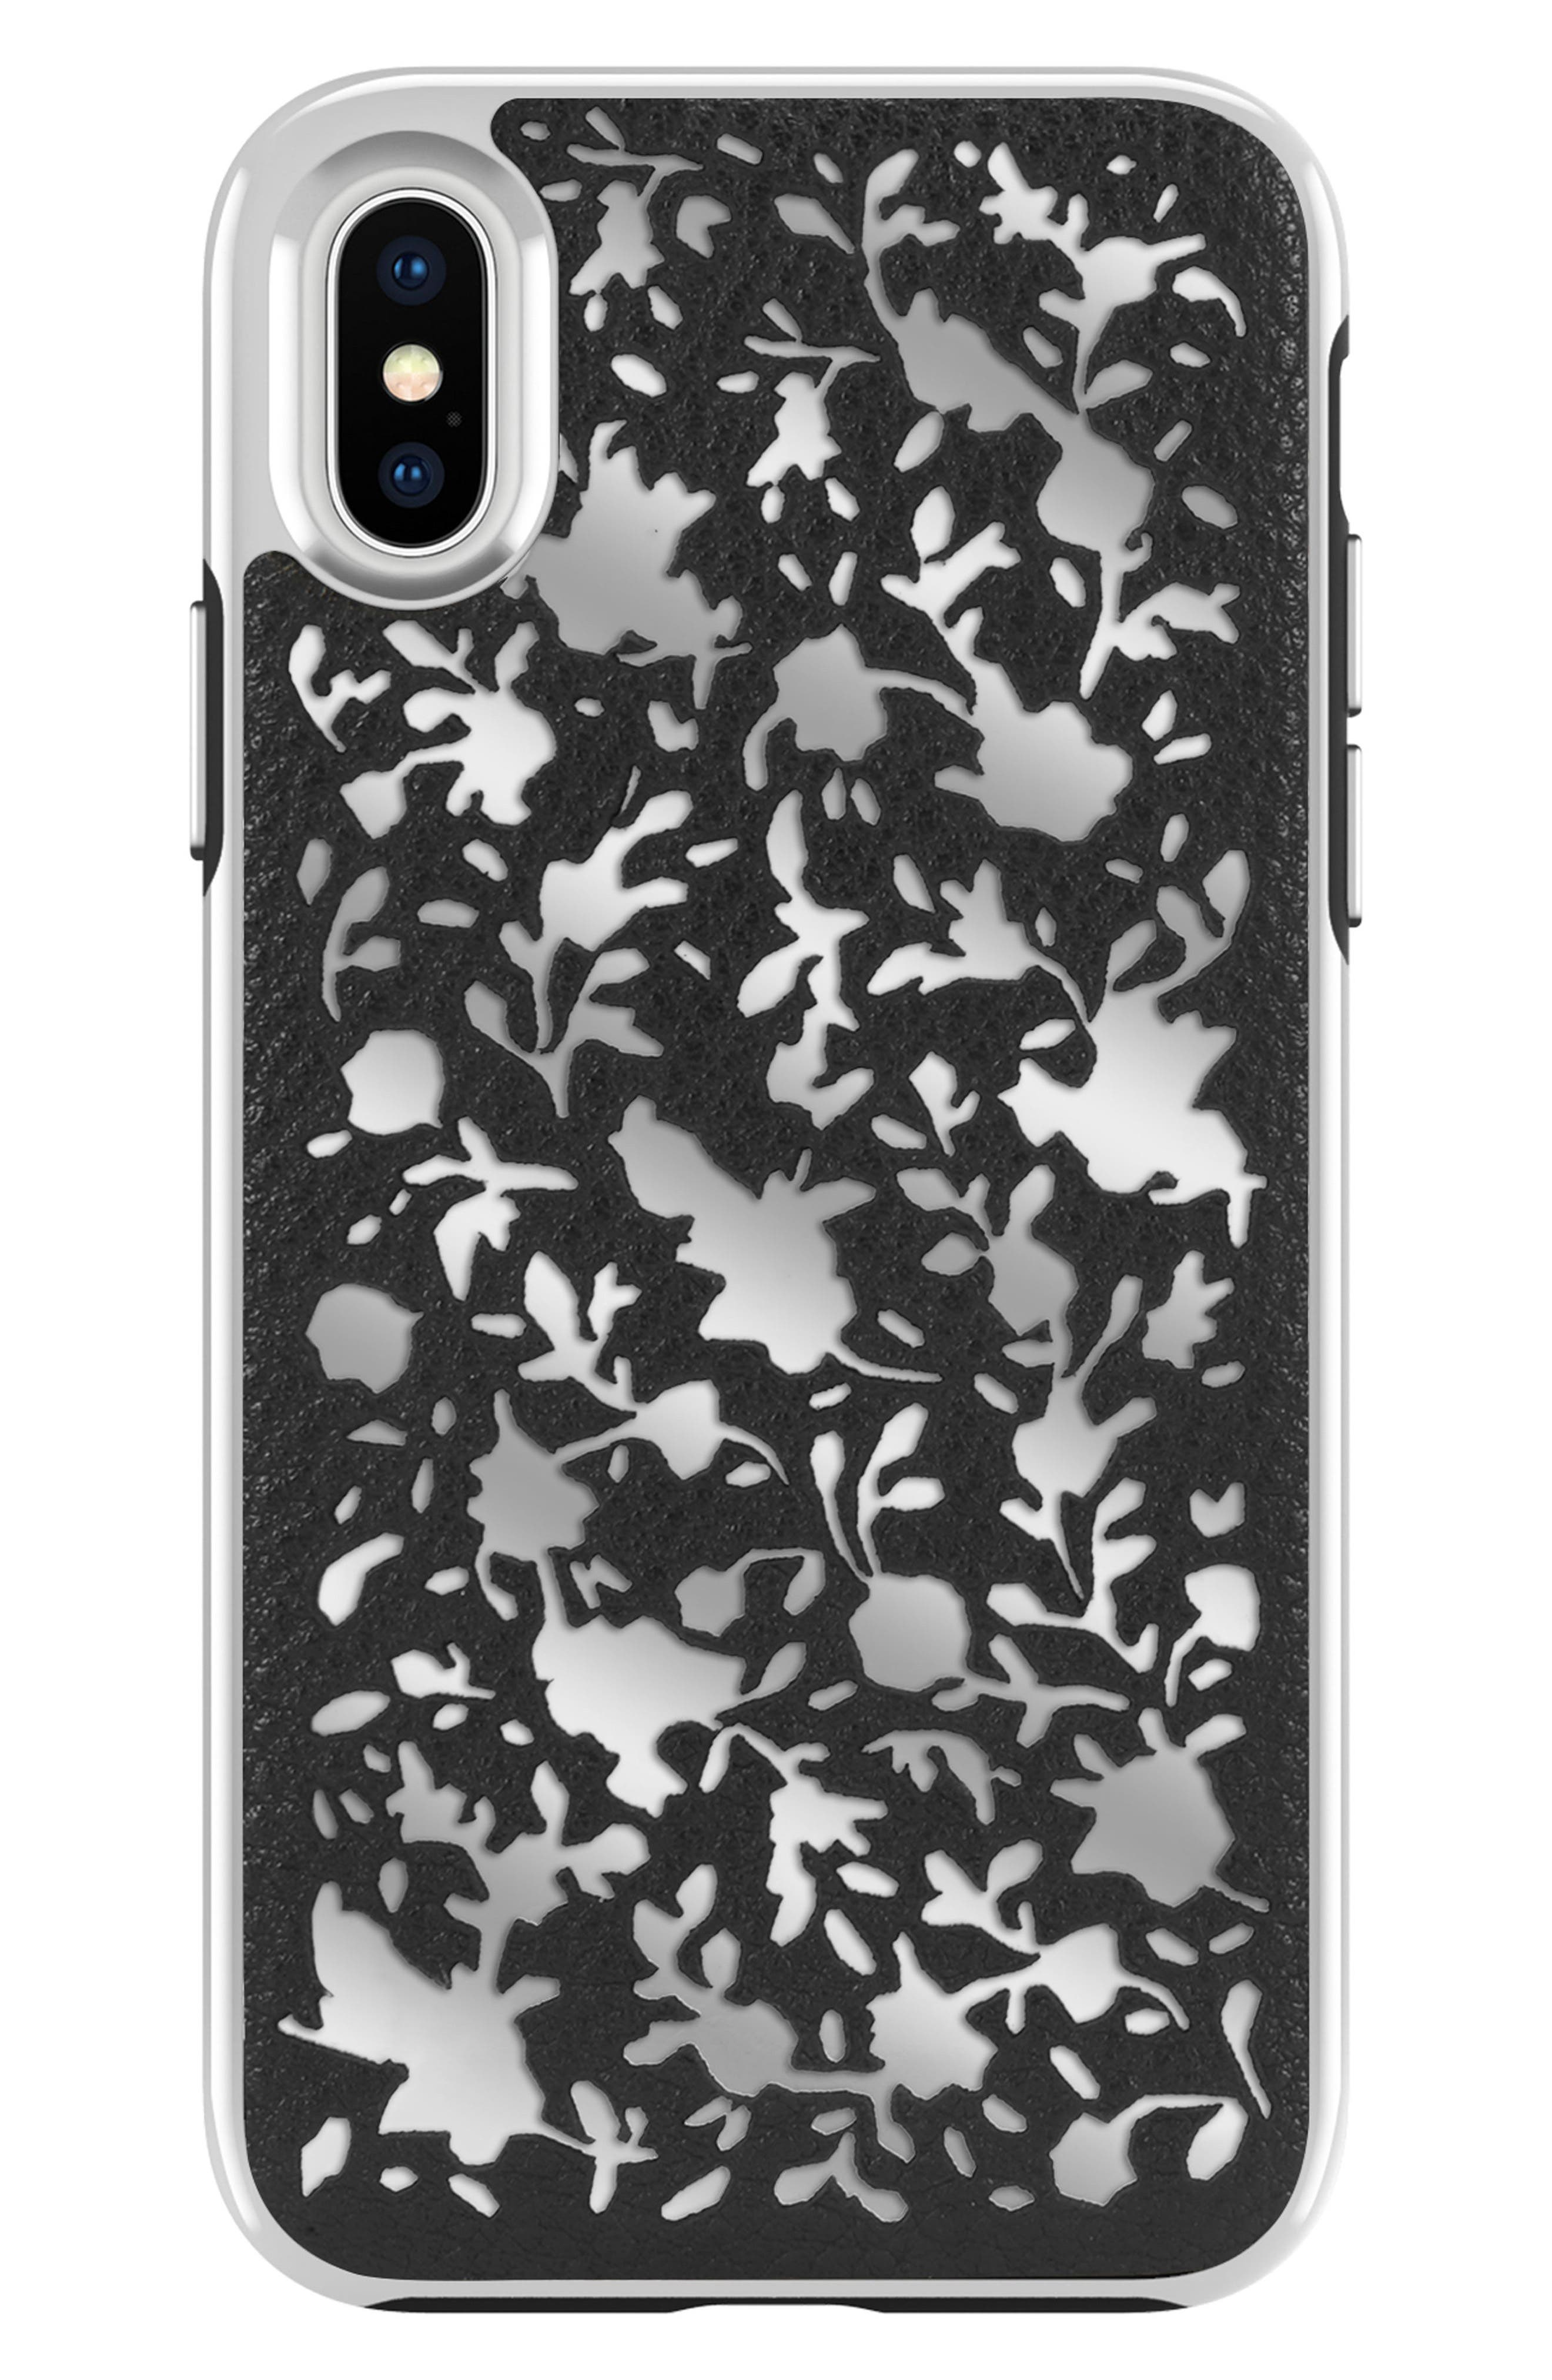 Luxury Calls Ditzy Floral iPhone X/Xs Case,                             Main thumbnail 1, color,                             BLACK/ SILVER